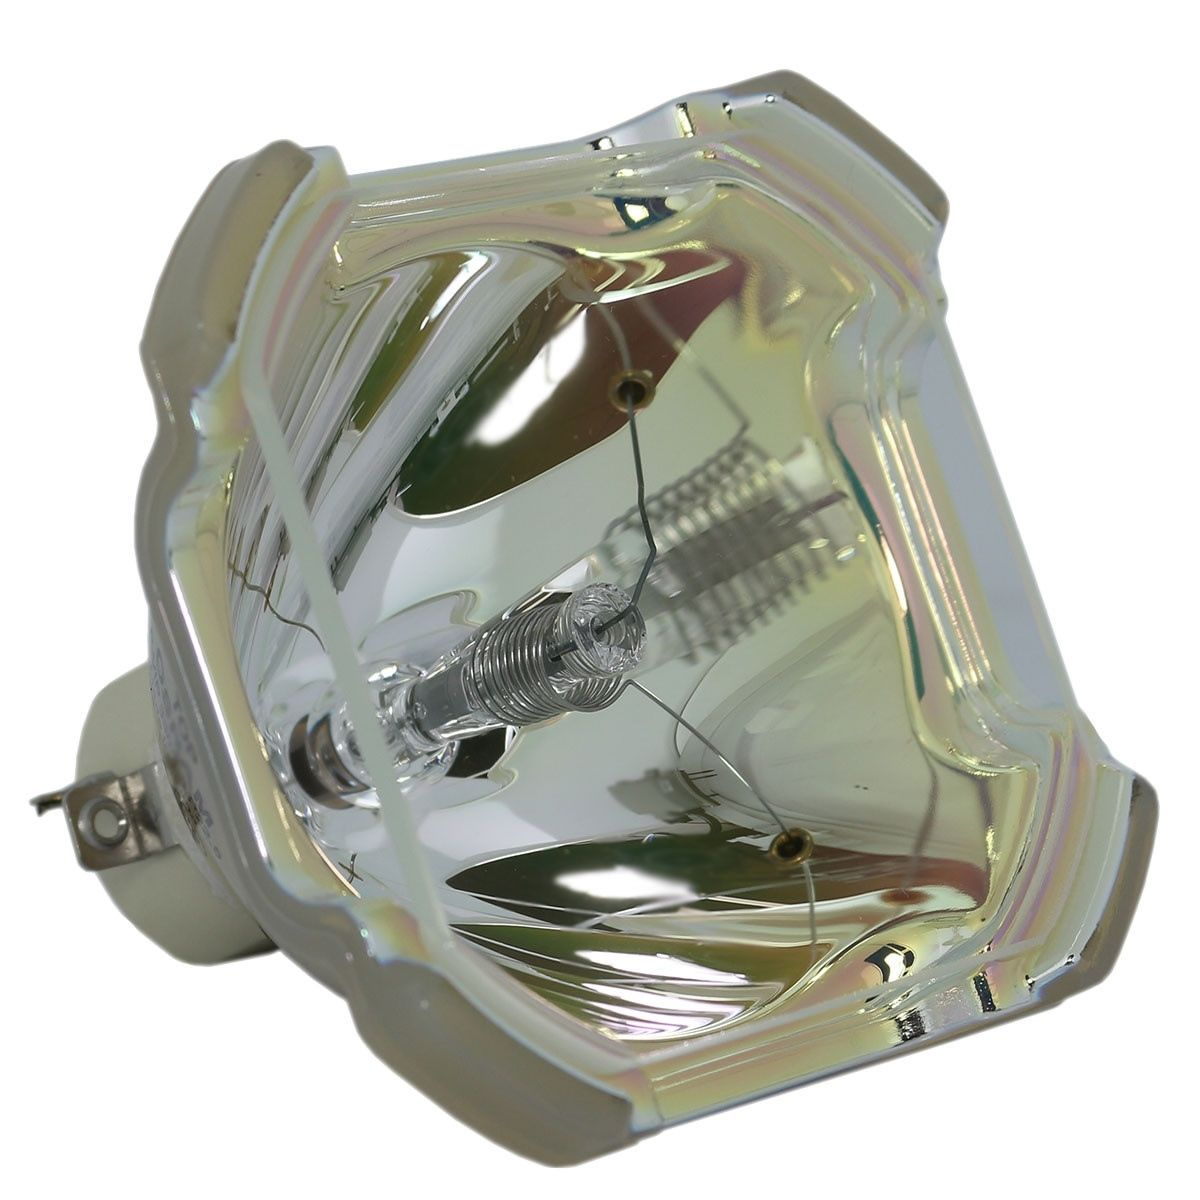 Compatible Bare Bulb LV-LP29 / 2542B001AA for Canon LV-7585 LV-7590 Projector Lamp Bulb without housing Free Shipping  free shipping original replacement bare bulb lv lp34 5322b001 for canon lv 7590 projectors 245w projectors